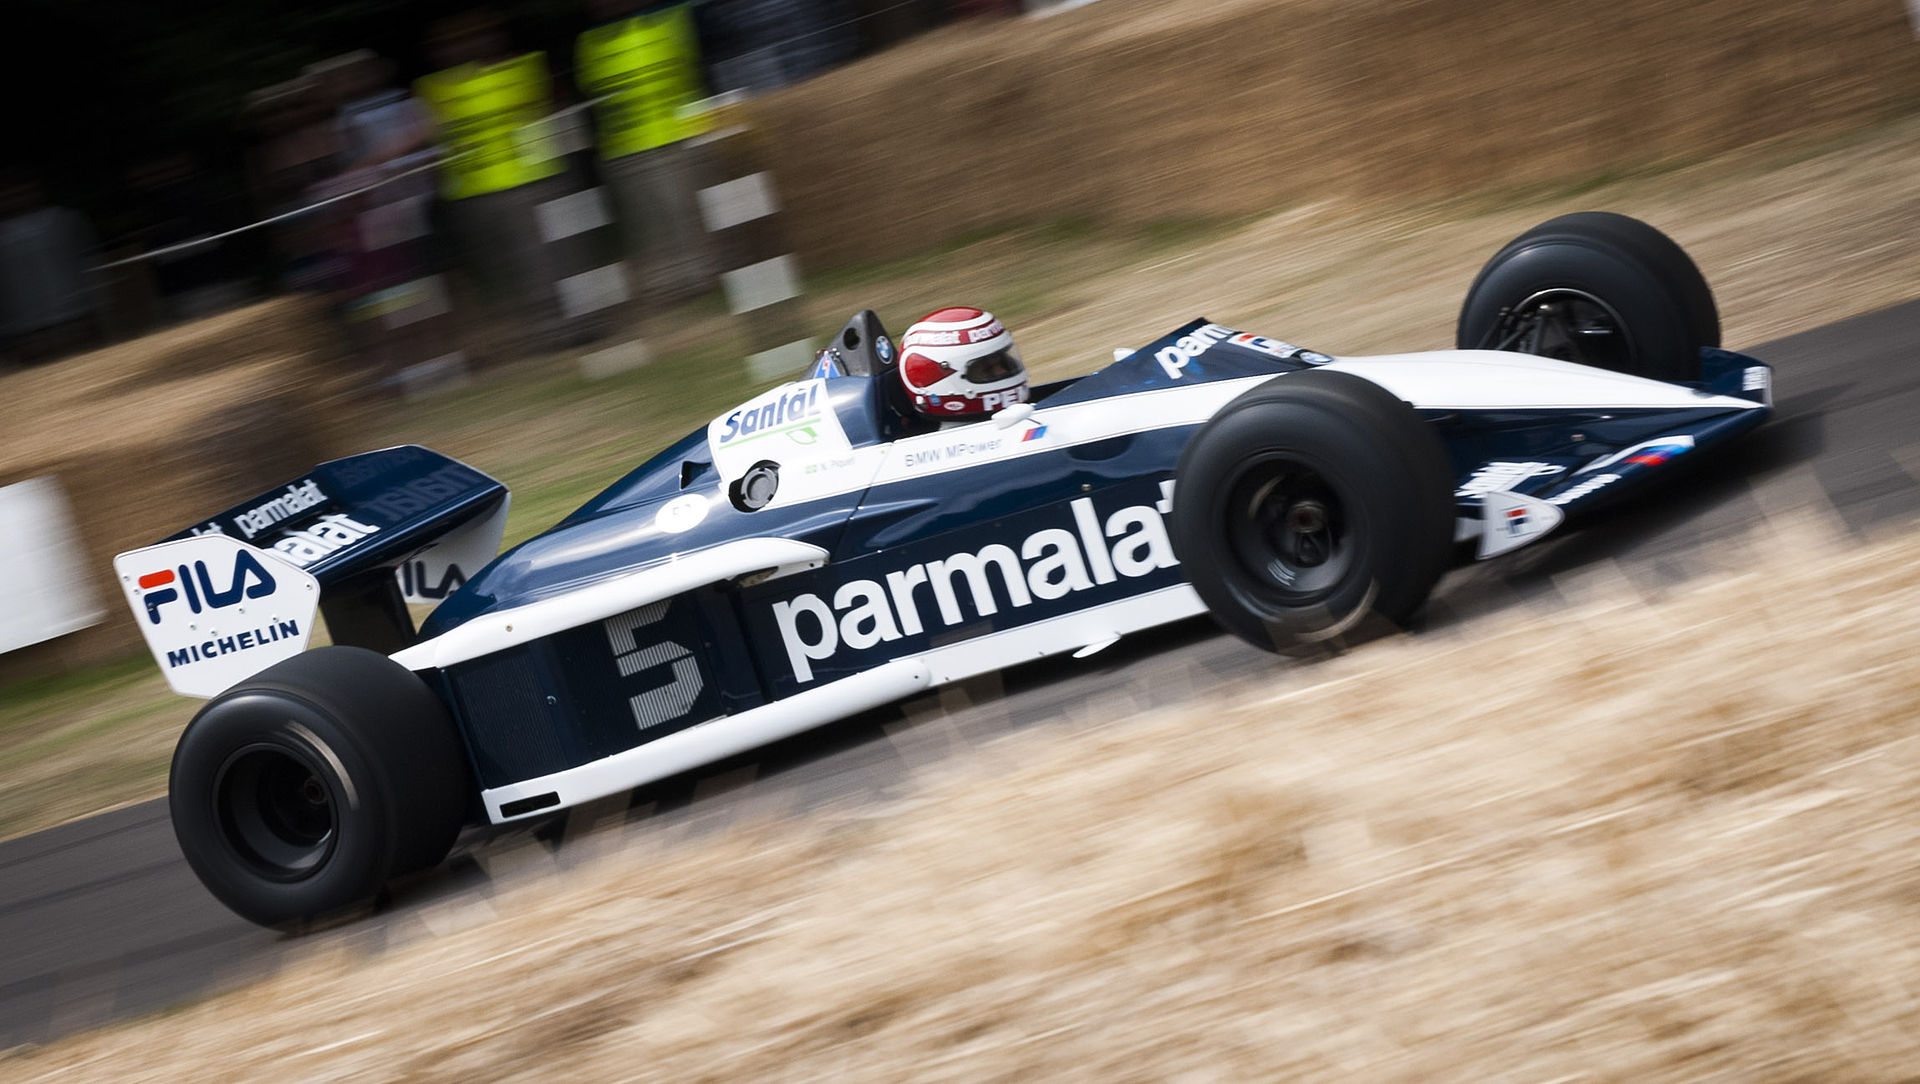 1920px-Nelson_Piquet_driving_Brabham_BT52_2013_Goodwood_Festival_of_Speed.jpg